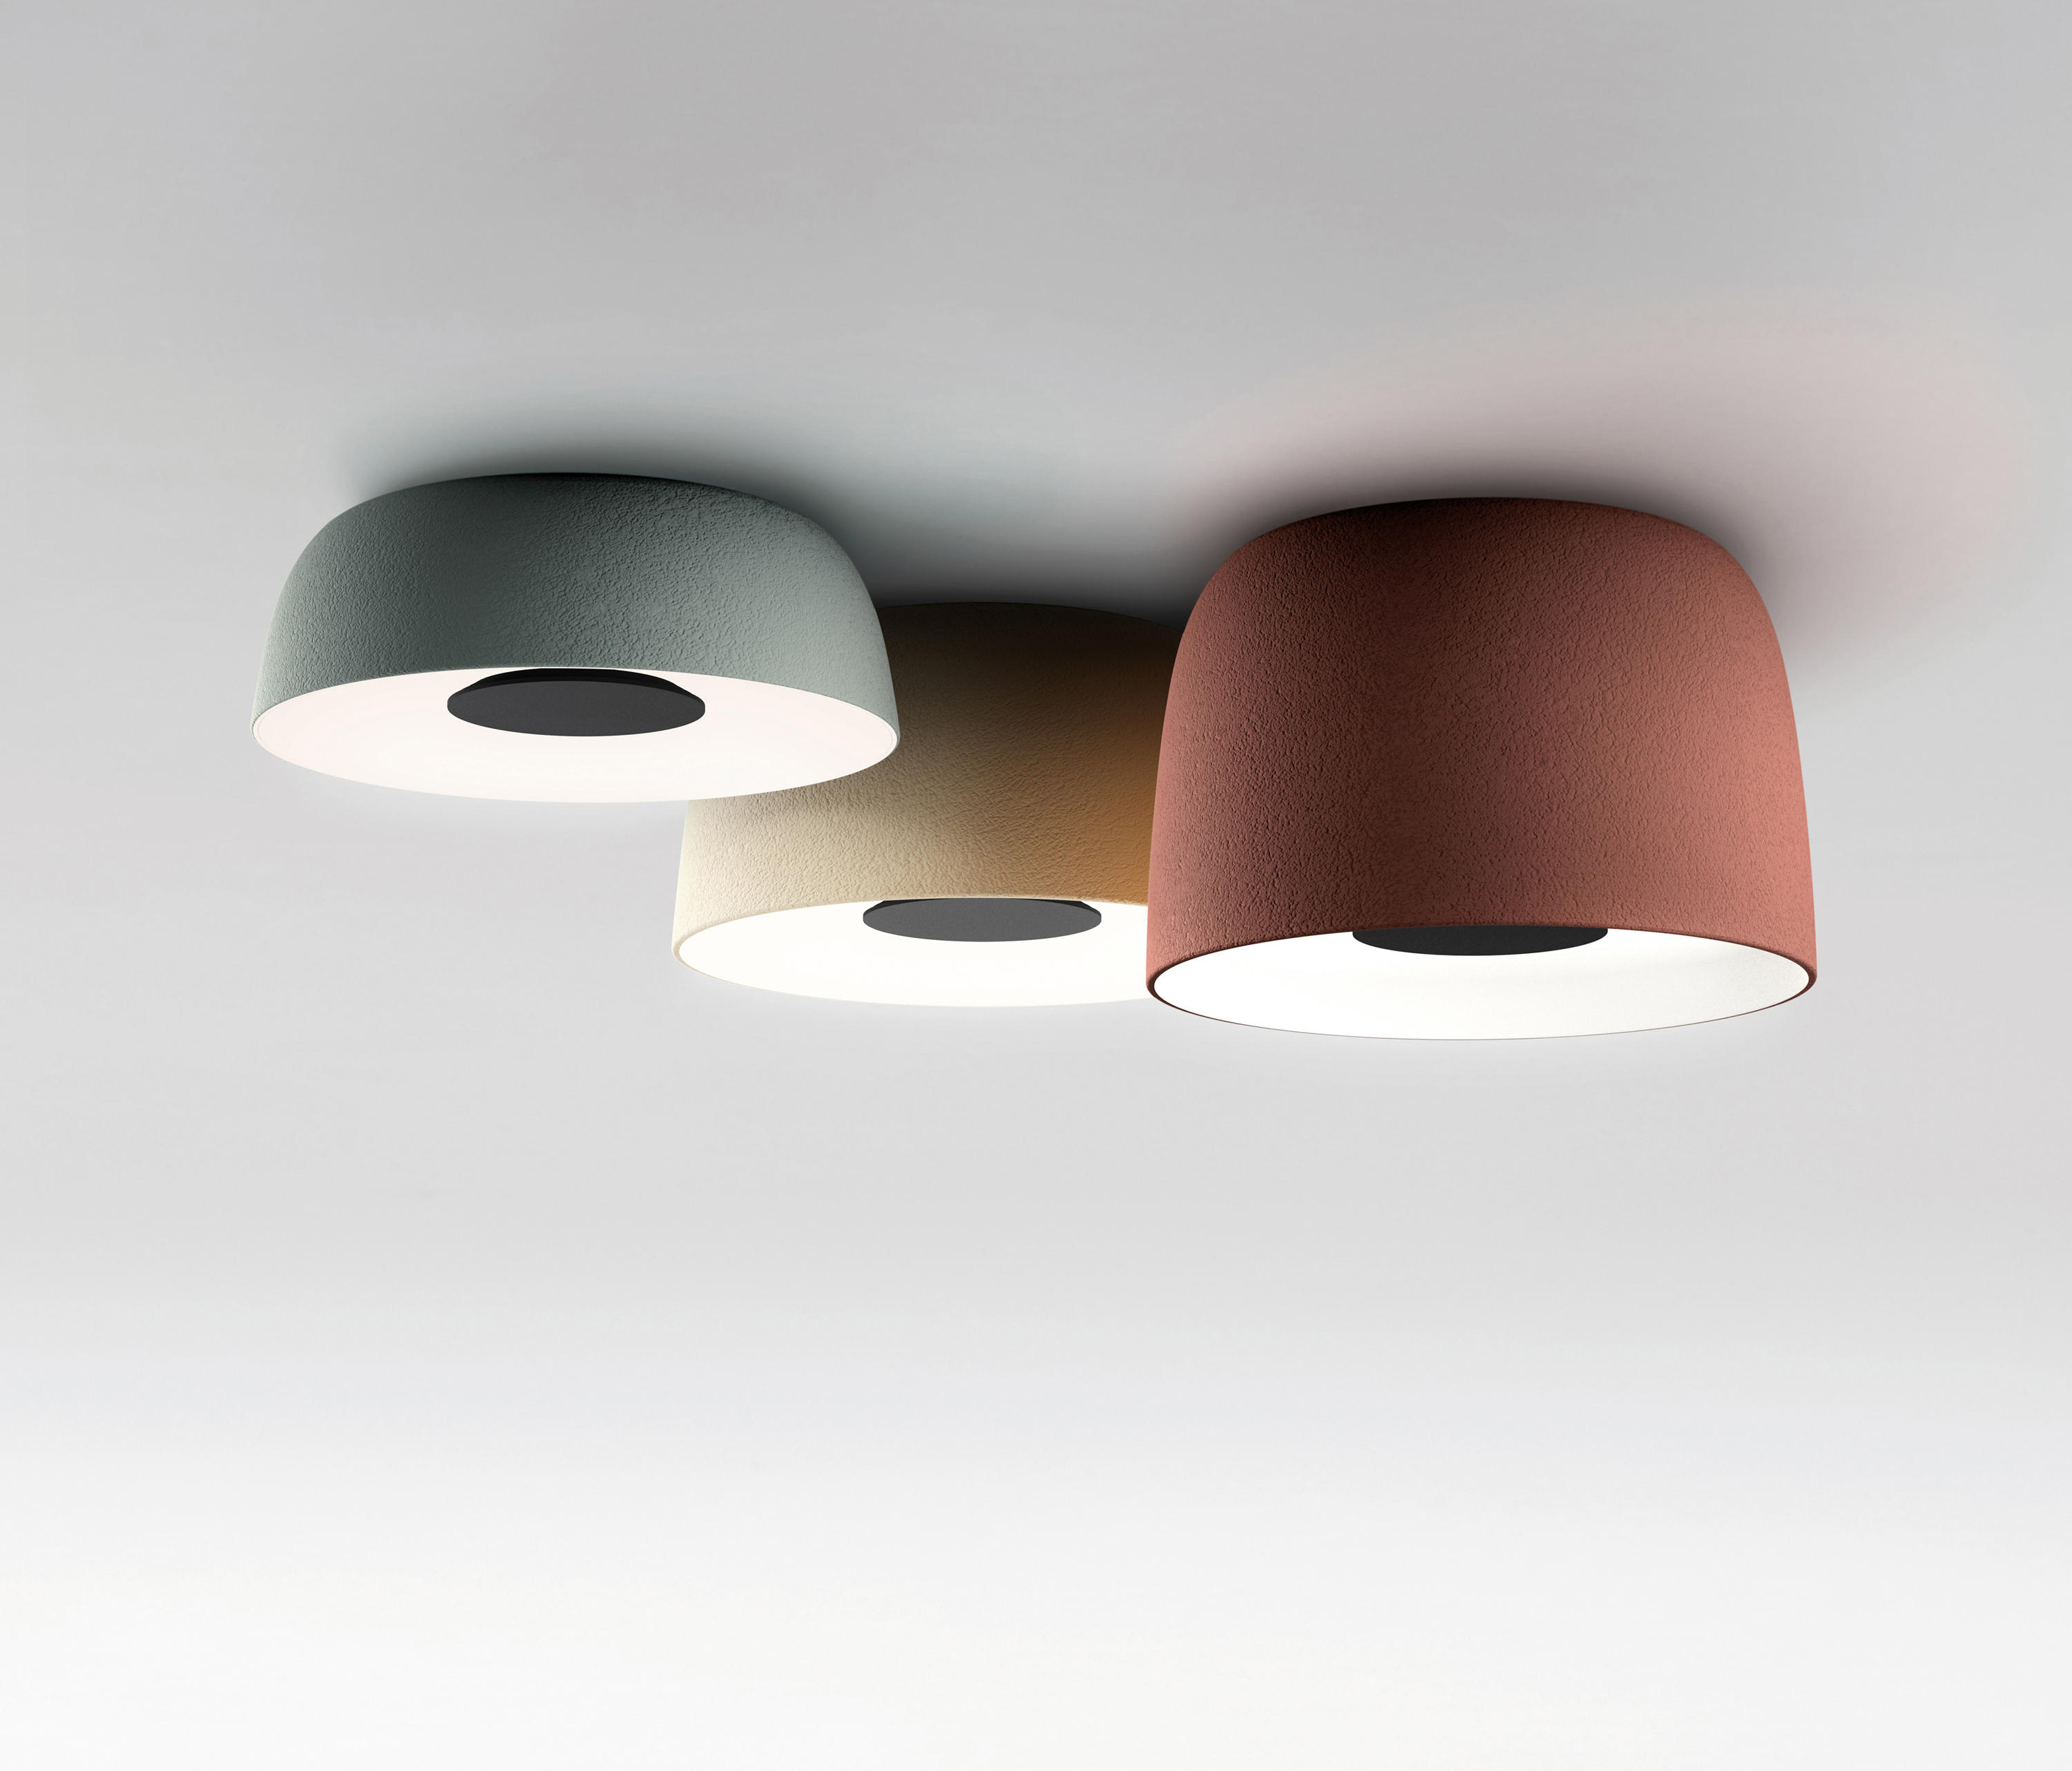 Djemb general lighting from marset architonic for Deckenleuchten design